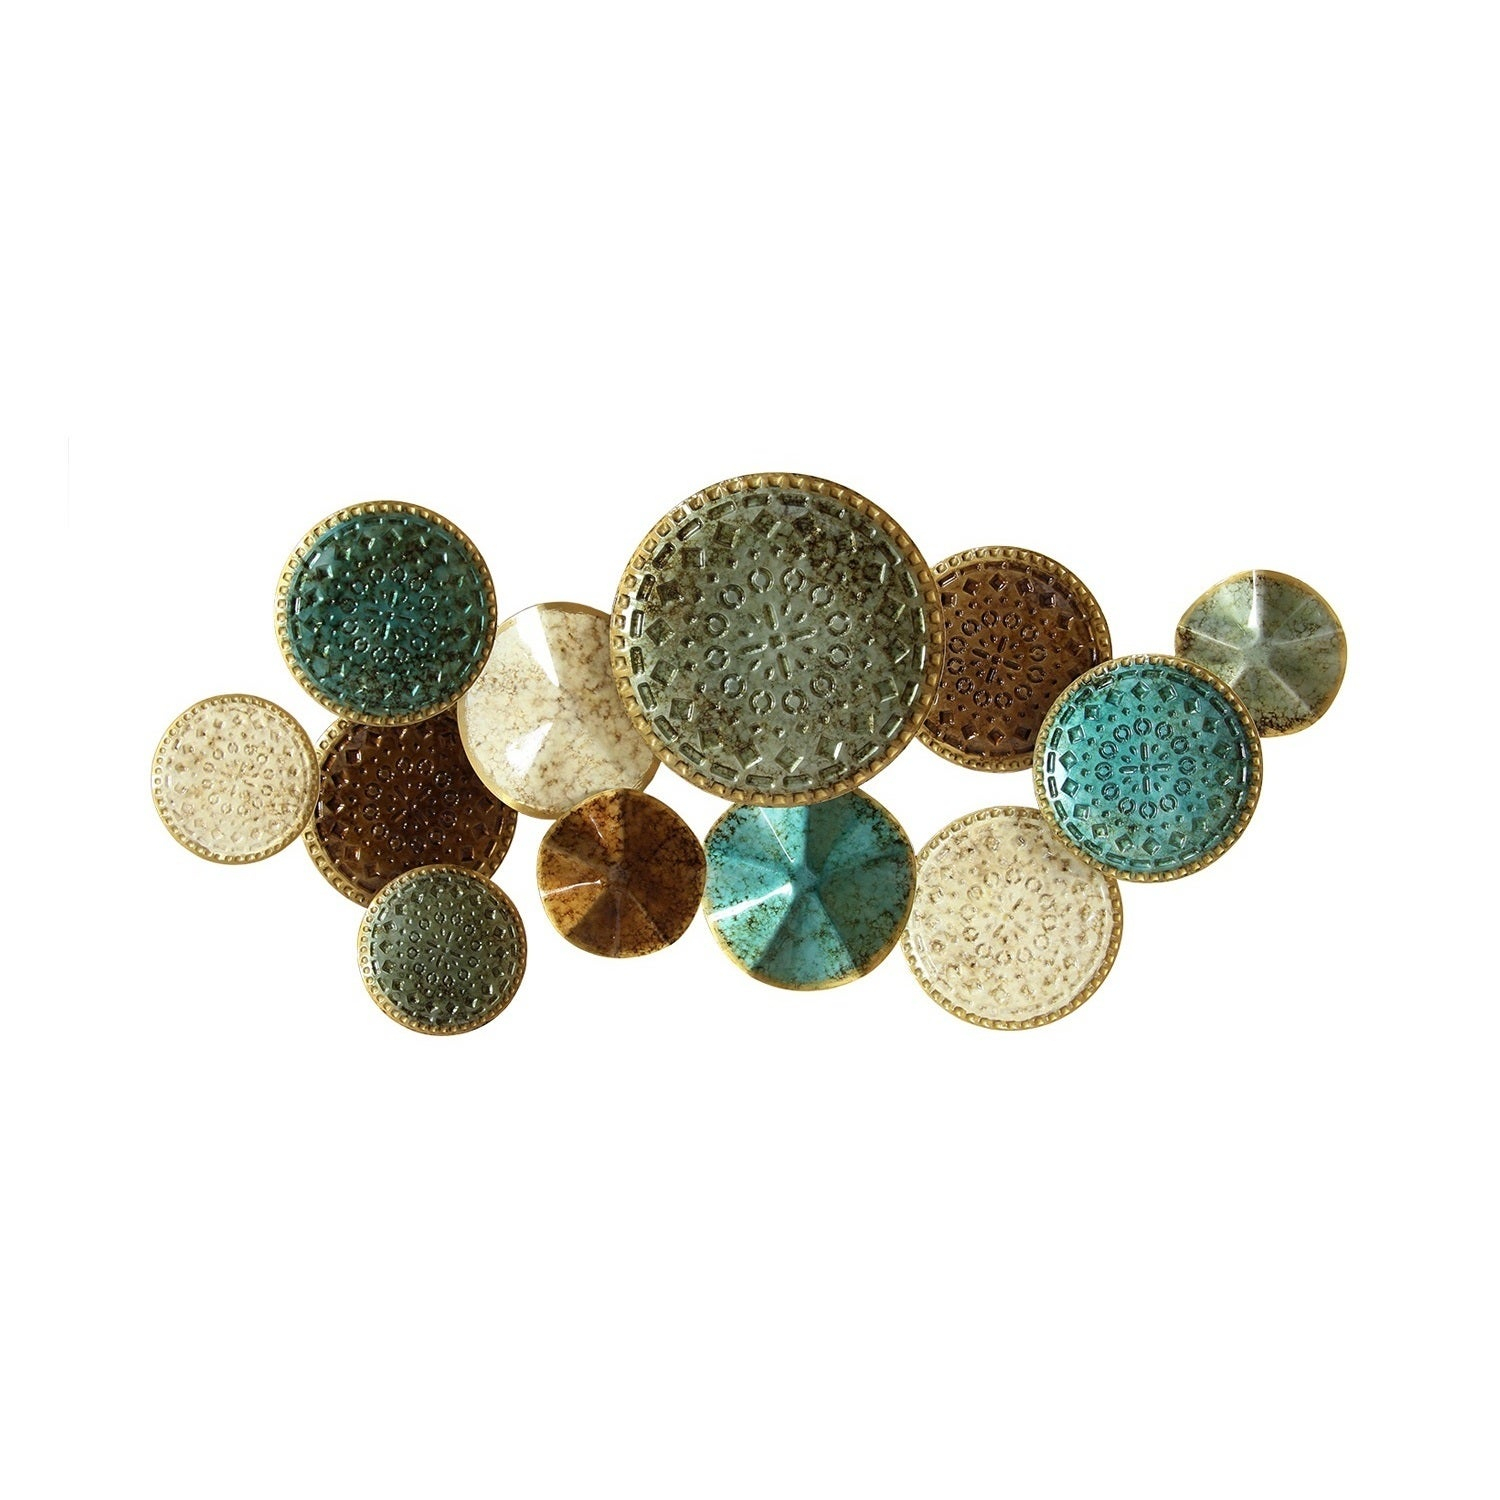 The Curated Nomad Mel Home Multicolor Metal Plates Wall Decor Throughout Scattered Metal Italian Plates Wall Decor (View 21 of 30)